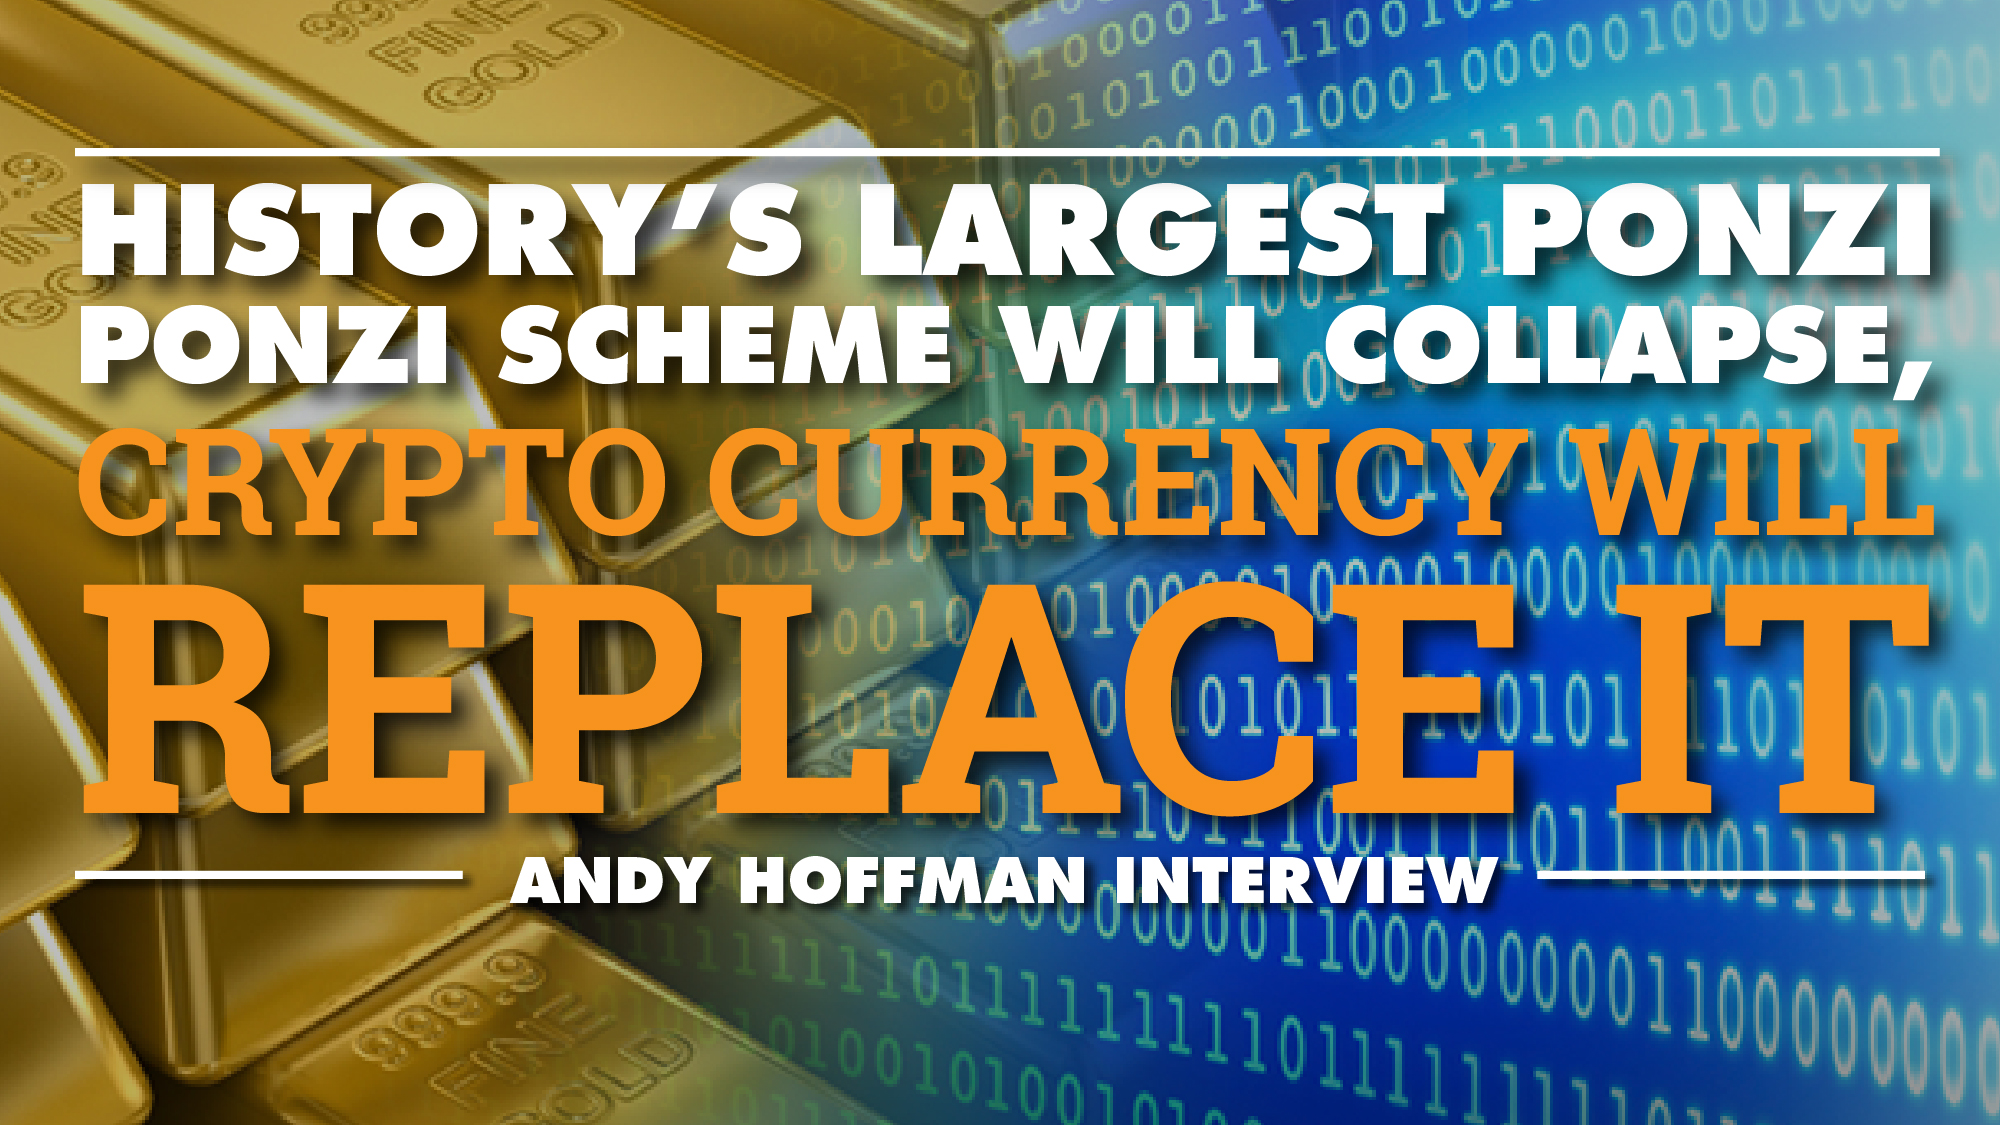 History's Largest Ponzi Scheme Will Collapse, Crypto Currency Will Replace It – Andy Hoffman Interview